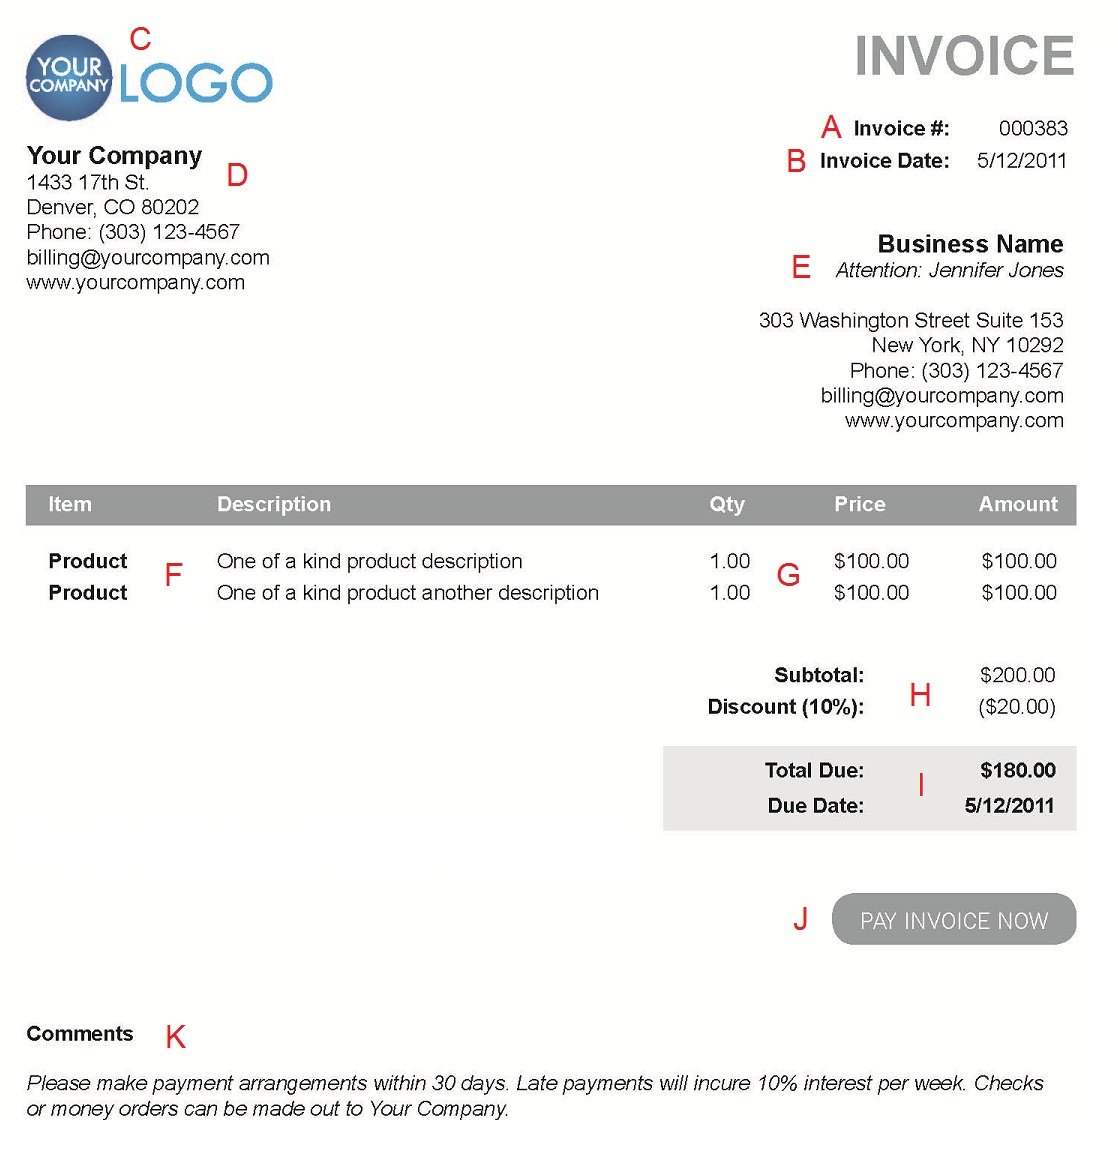 Angkajituus  Surprising The  Different Sections Of An Electronic Payment Invoice With Exquisite A  With Cute Auto Invoice Price Vs Msrp Also Online Free Invoice Template In Addition Tnt Proforma Invoice And Invoicing Discounting As Well As Recipient Created Invoice Additionally Self Billing Invoices From Paysimplecom With Angkajituus  Exquisite The  Different Sections Of An Electronic Payment Invoice With Cute A  And Surprising Auto Invoice Price Vs Msrp Also Online Free Invoice Template In Addition Tnt Proforma Invoice From Paysimplecom